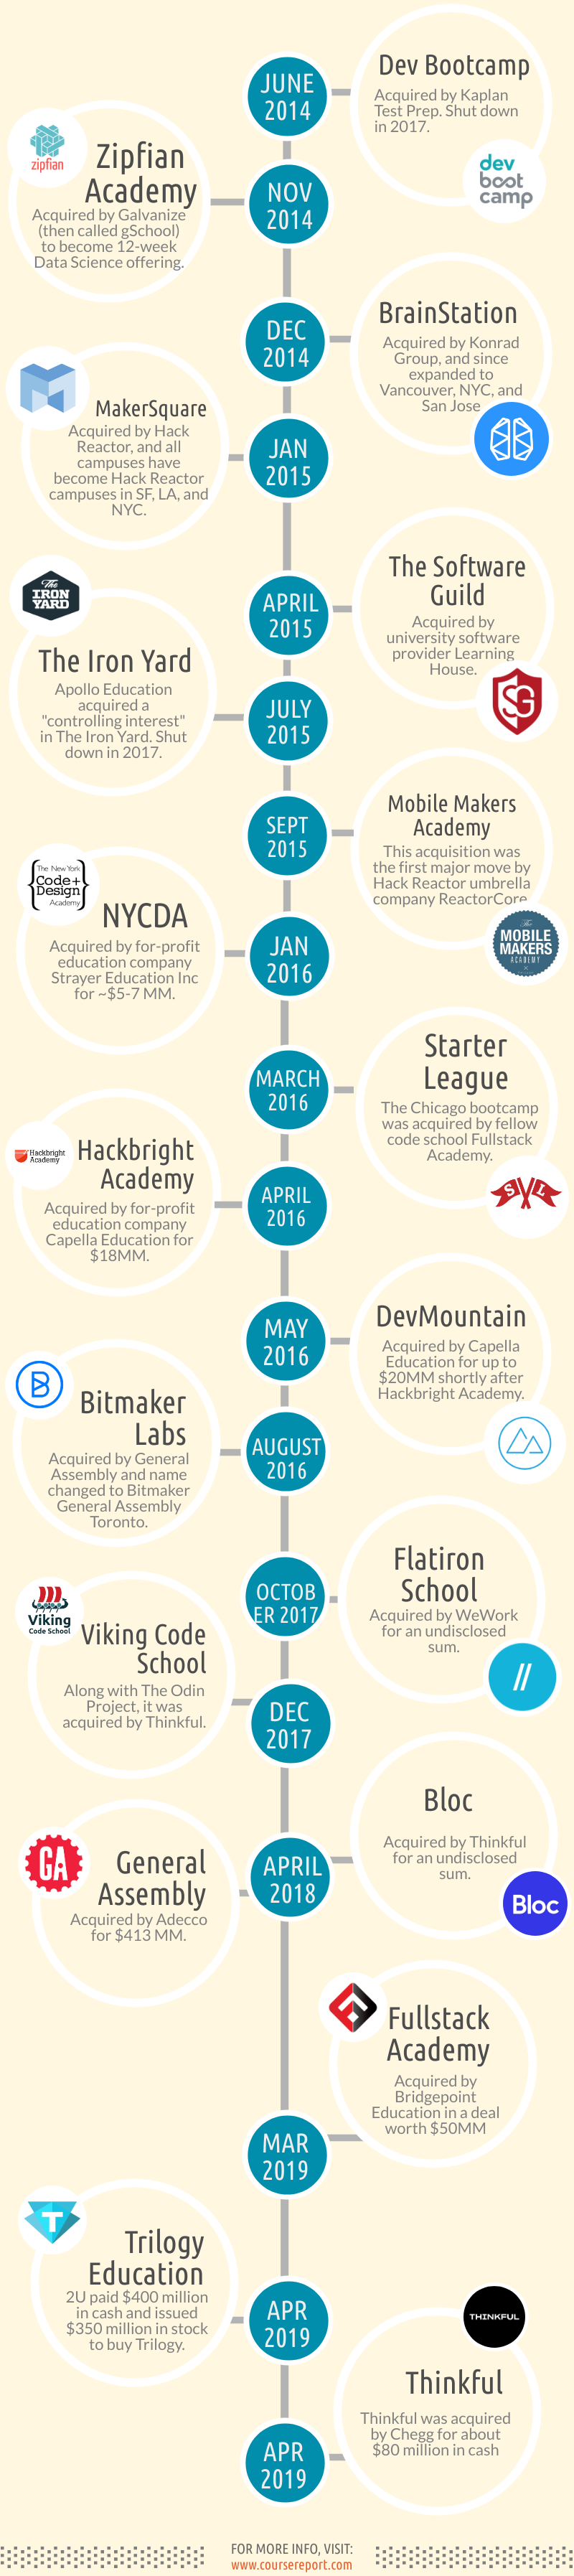 coding-bootcamp-acquisitions-infographic